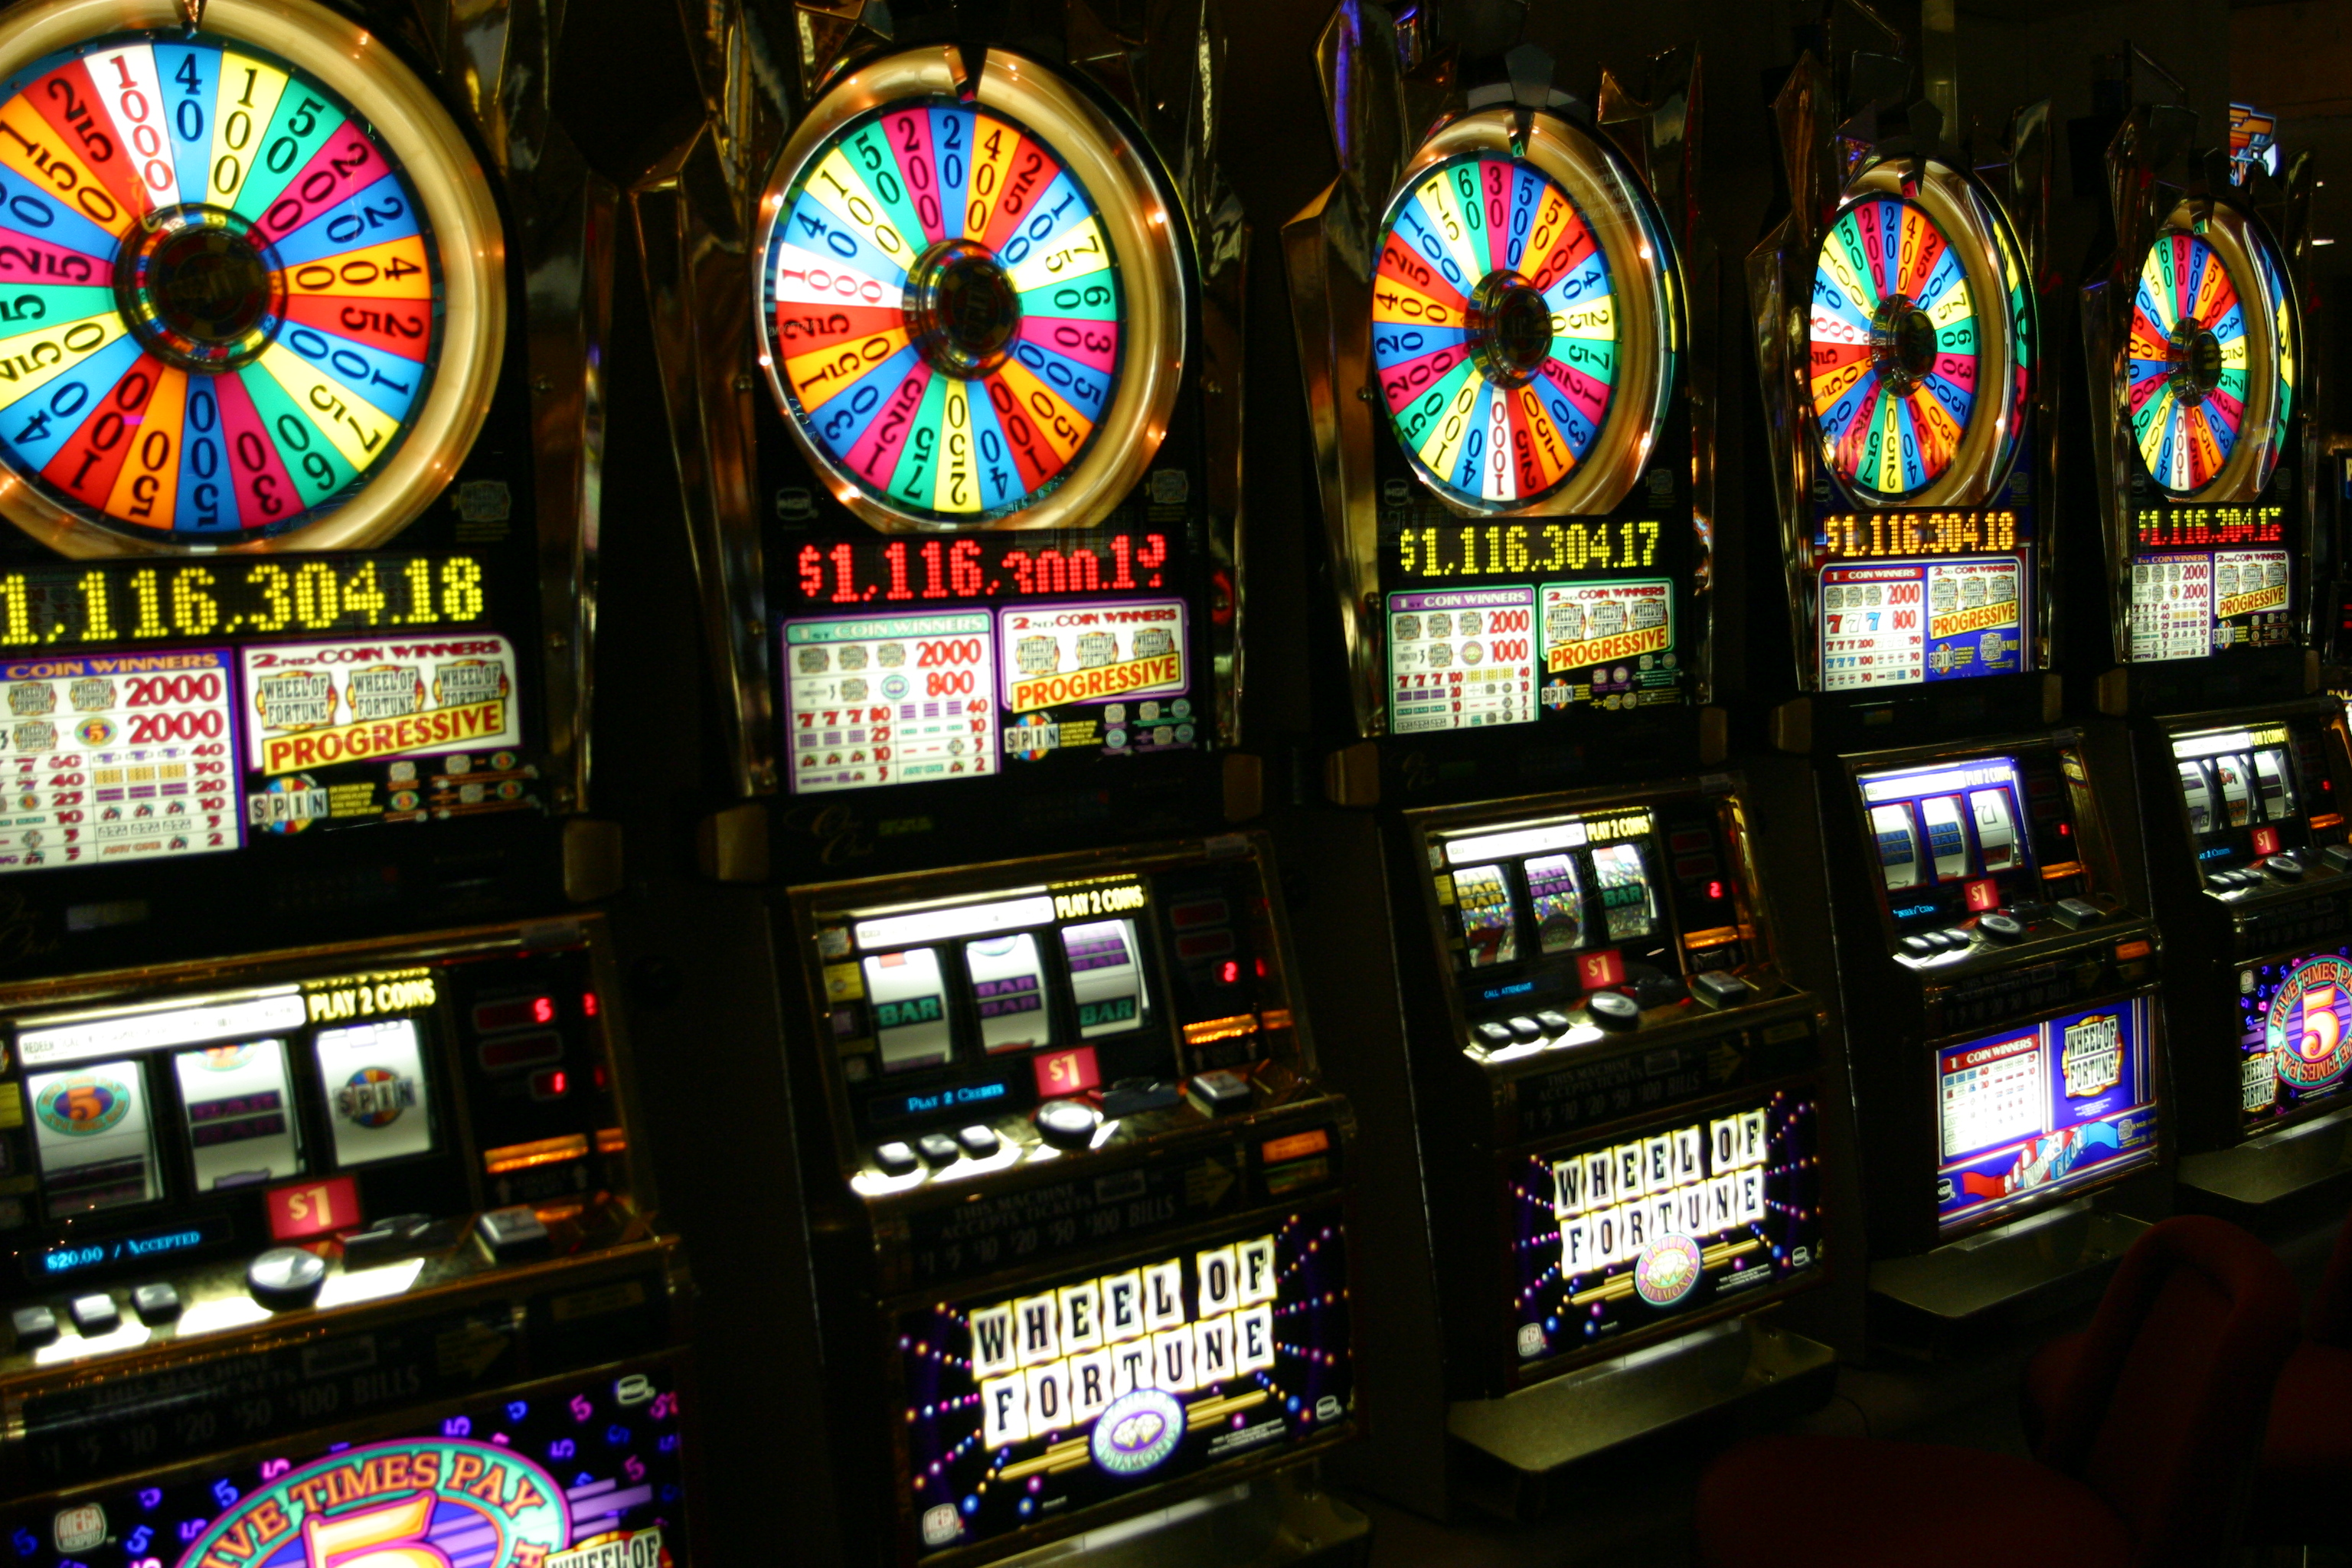 Casinos online slots machines - 790406